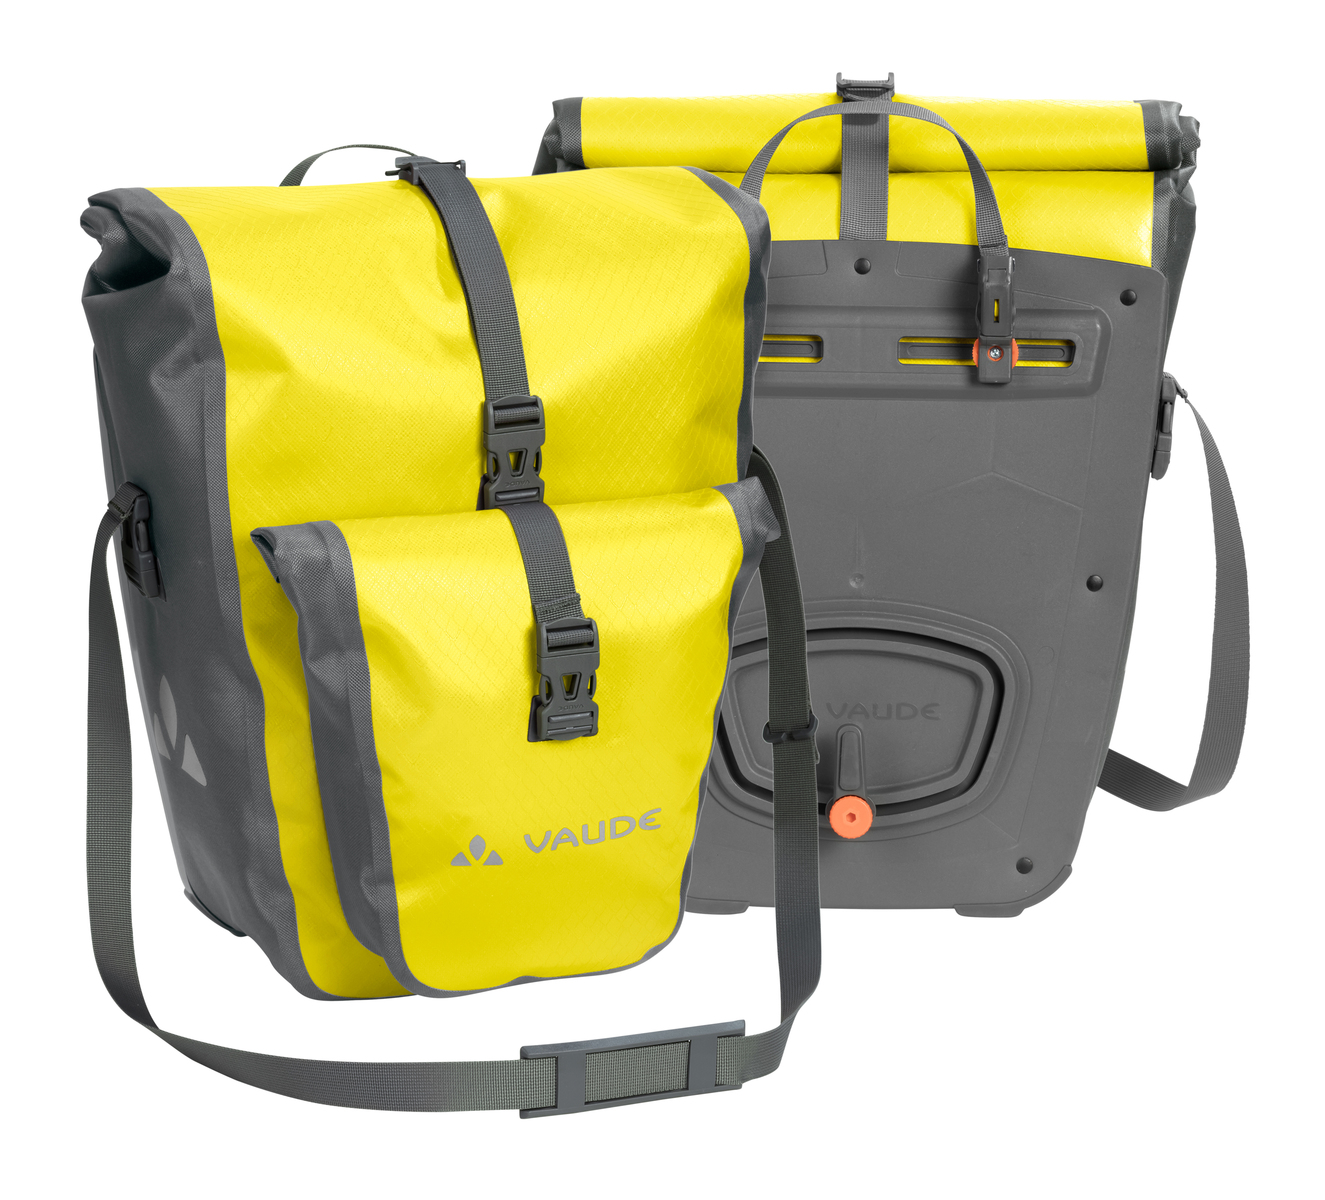 Fahrradtasche Aqua Back Plus  Made in Germany 51 Liter - Canary